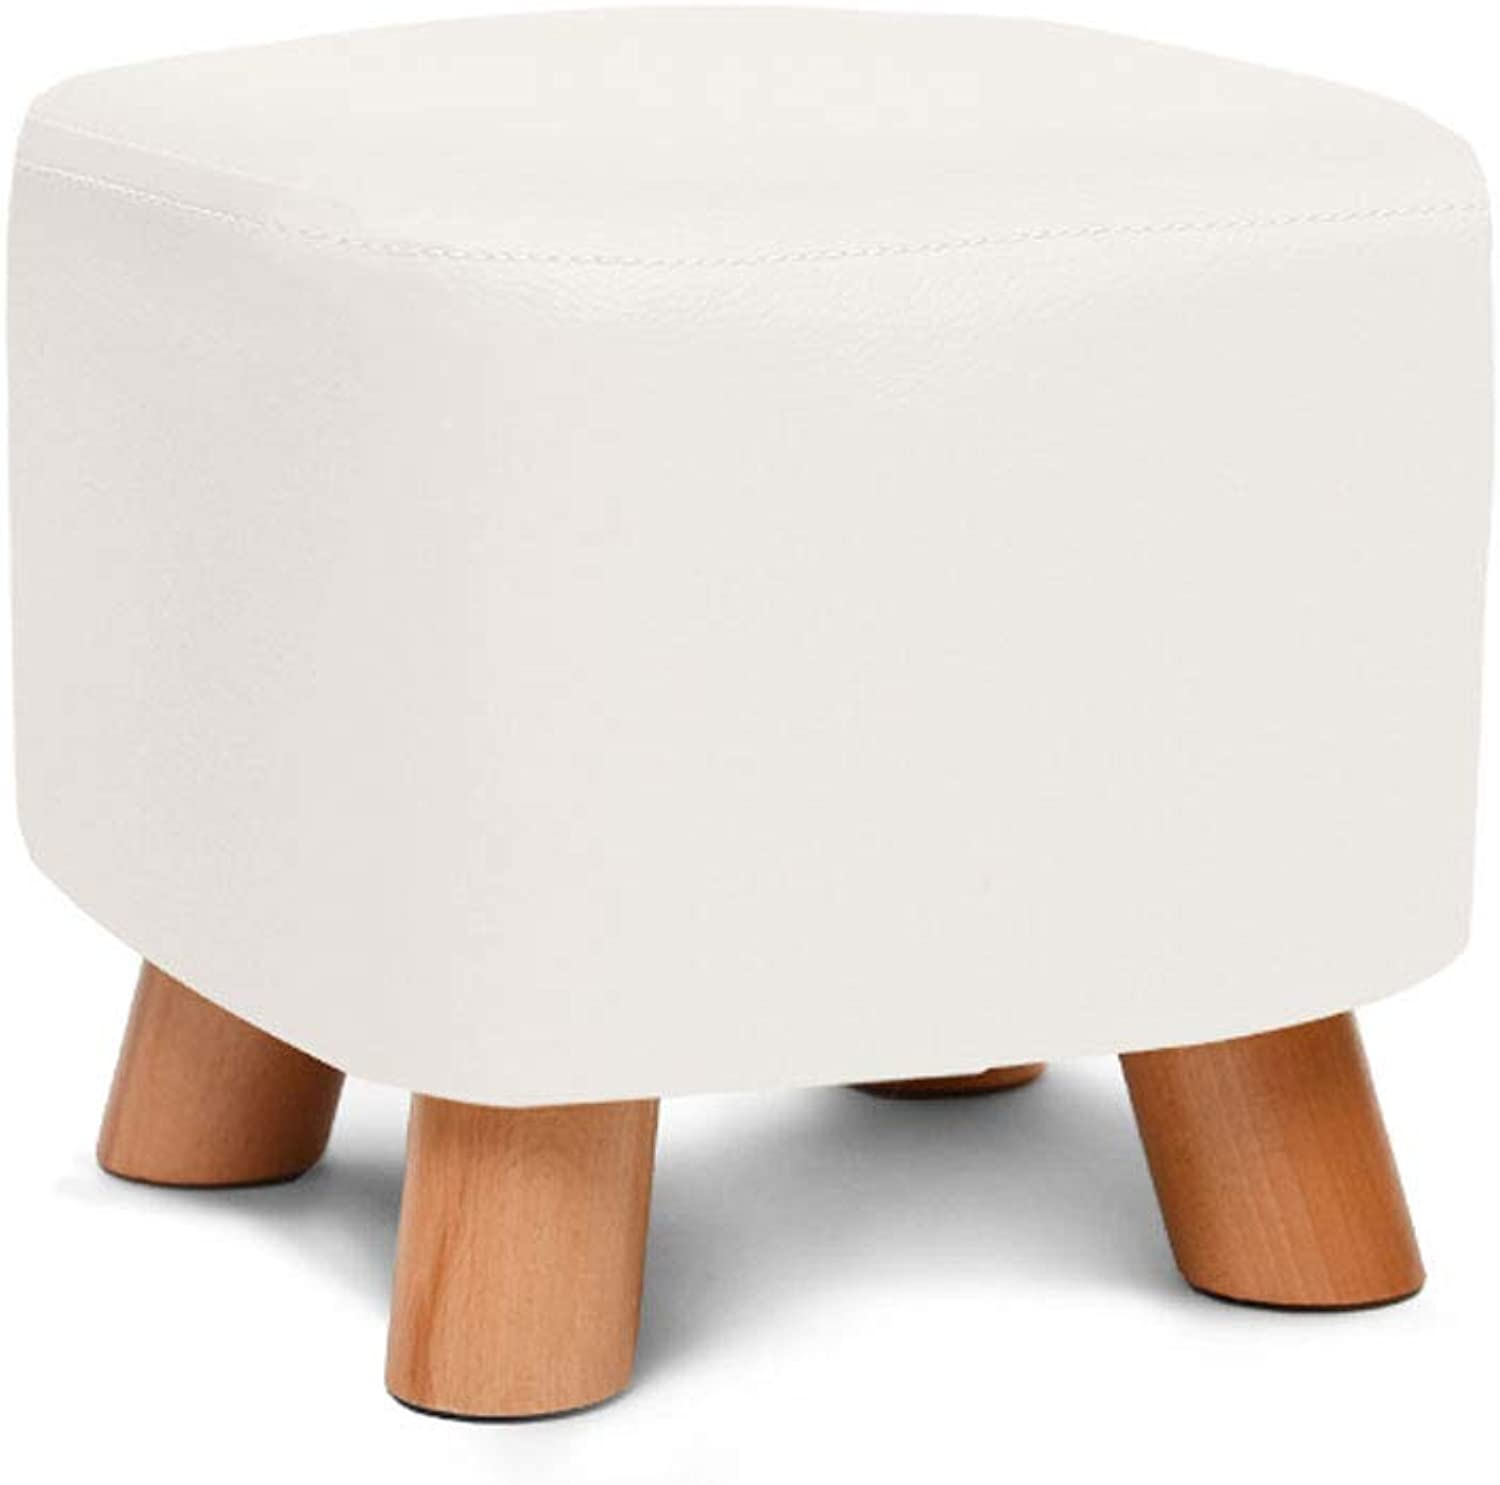 ZXW STOOLS- Solid Wood shoes Stool Creative Square Stool Fabric Stool Sofa Stool Coffee Table Stool Home Stool (color   White, Size   28x28x25cm)